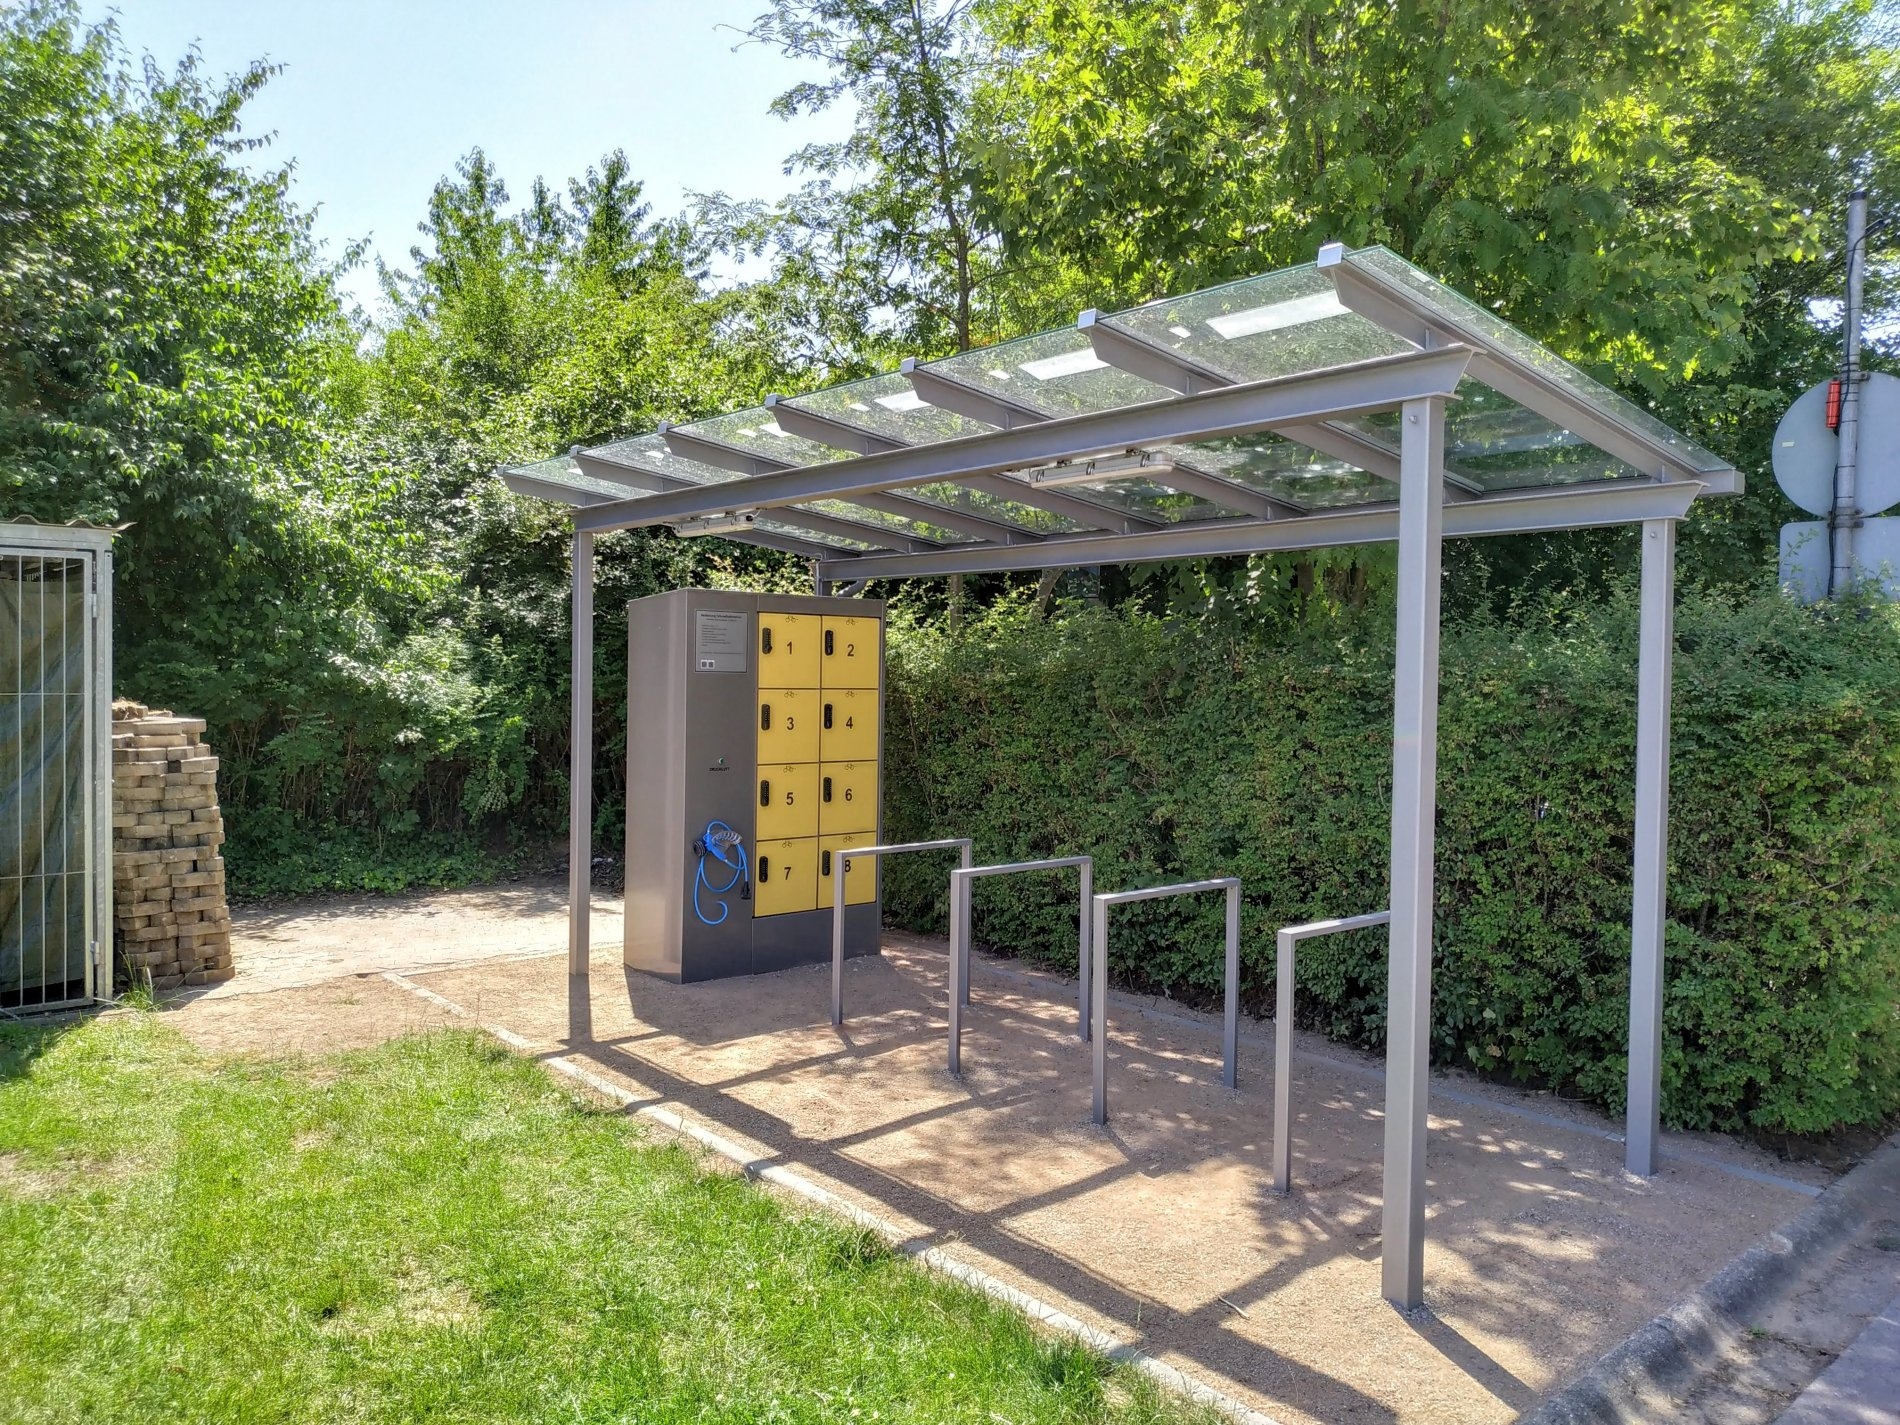 E-Bike Ladestation am Caravanplatz Kirkel